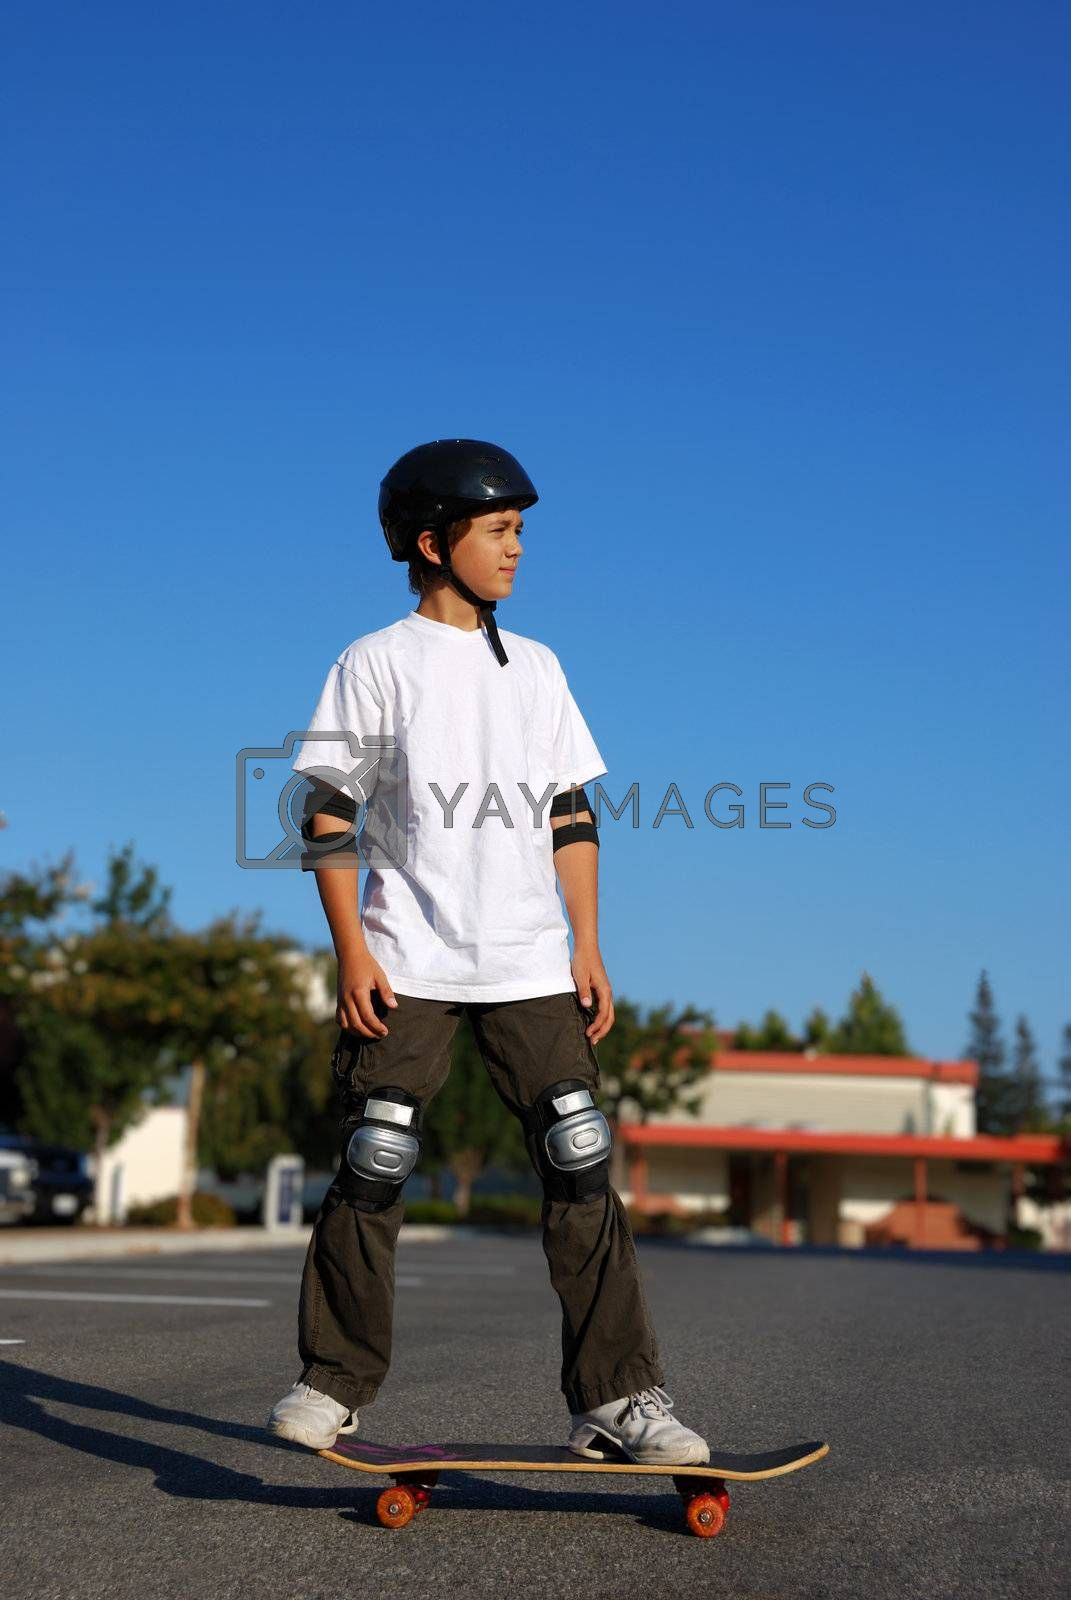 boy standing on a skateboard in an afternoon sun with blue sky in the background